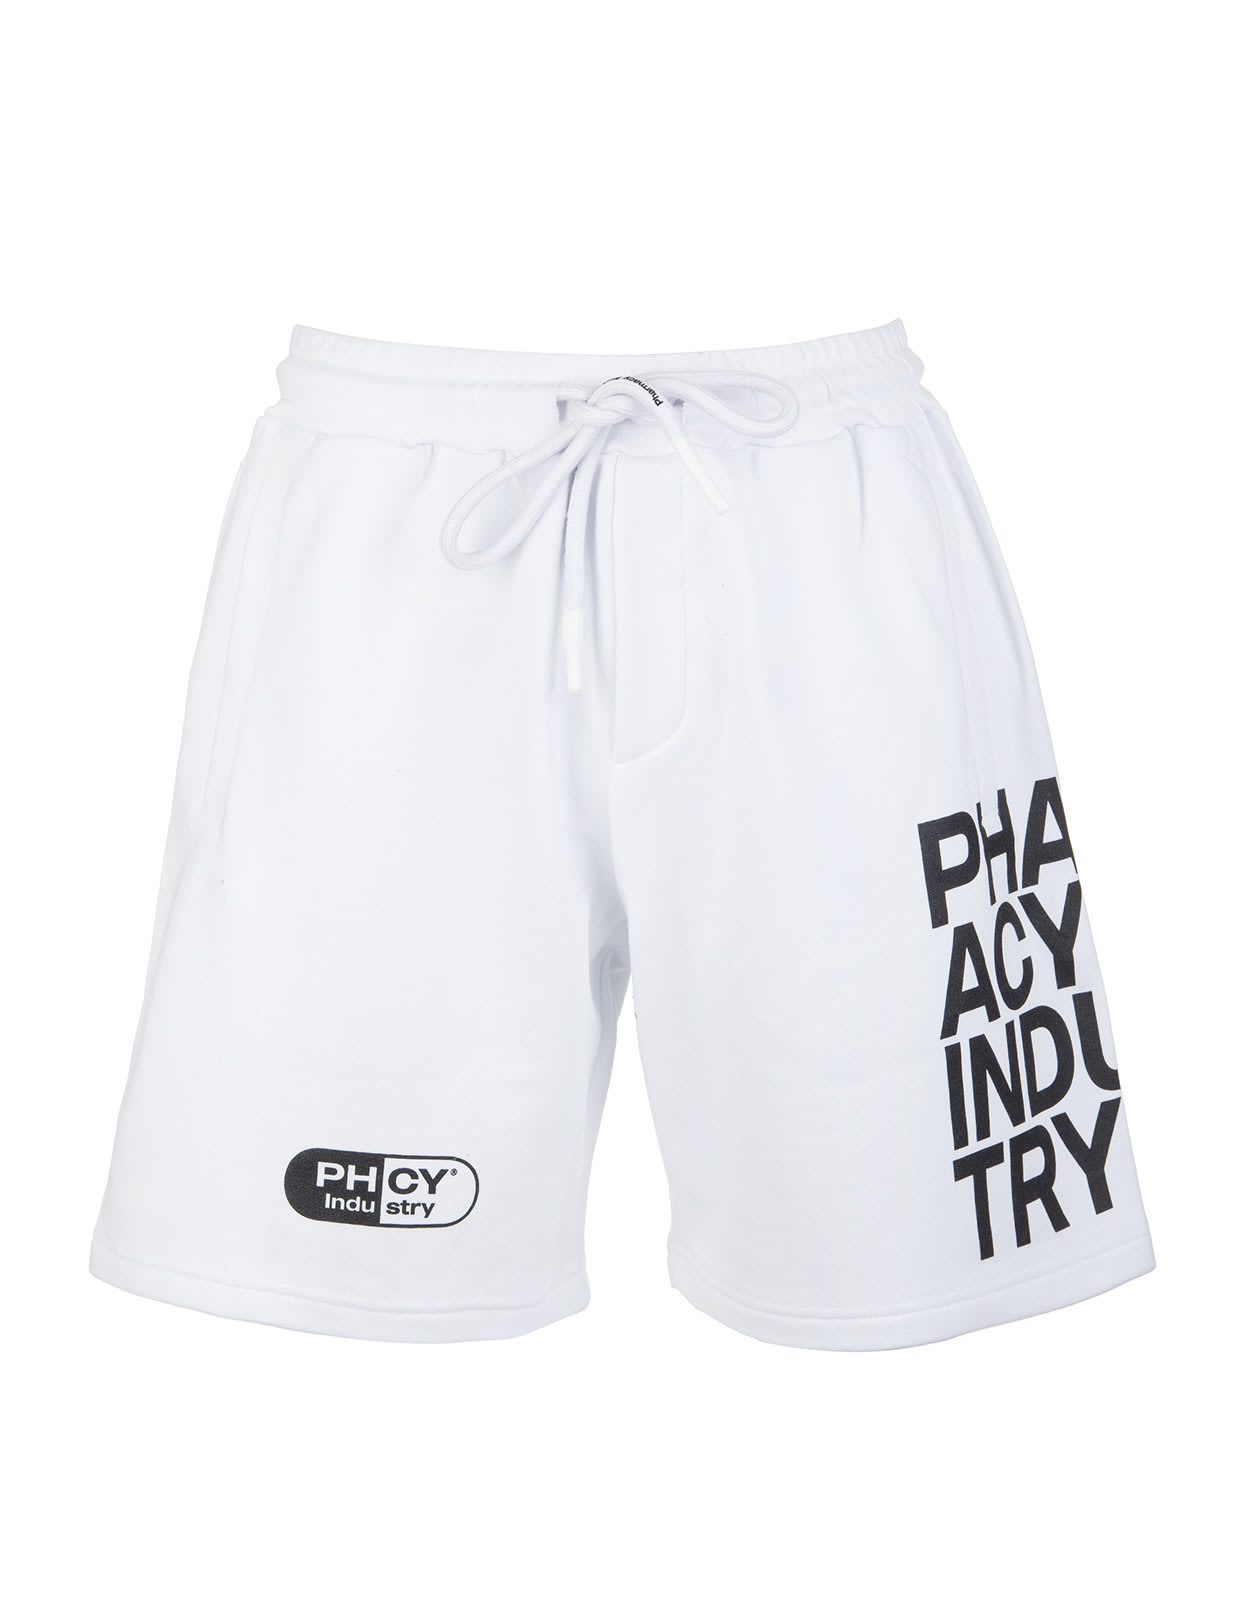 Pharmacy Industry Cottons MAN WHITE SPORTS BERMUDA SHORTS WITH CONTRAST LOGOS